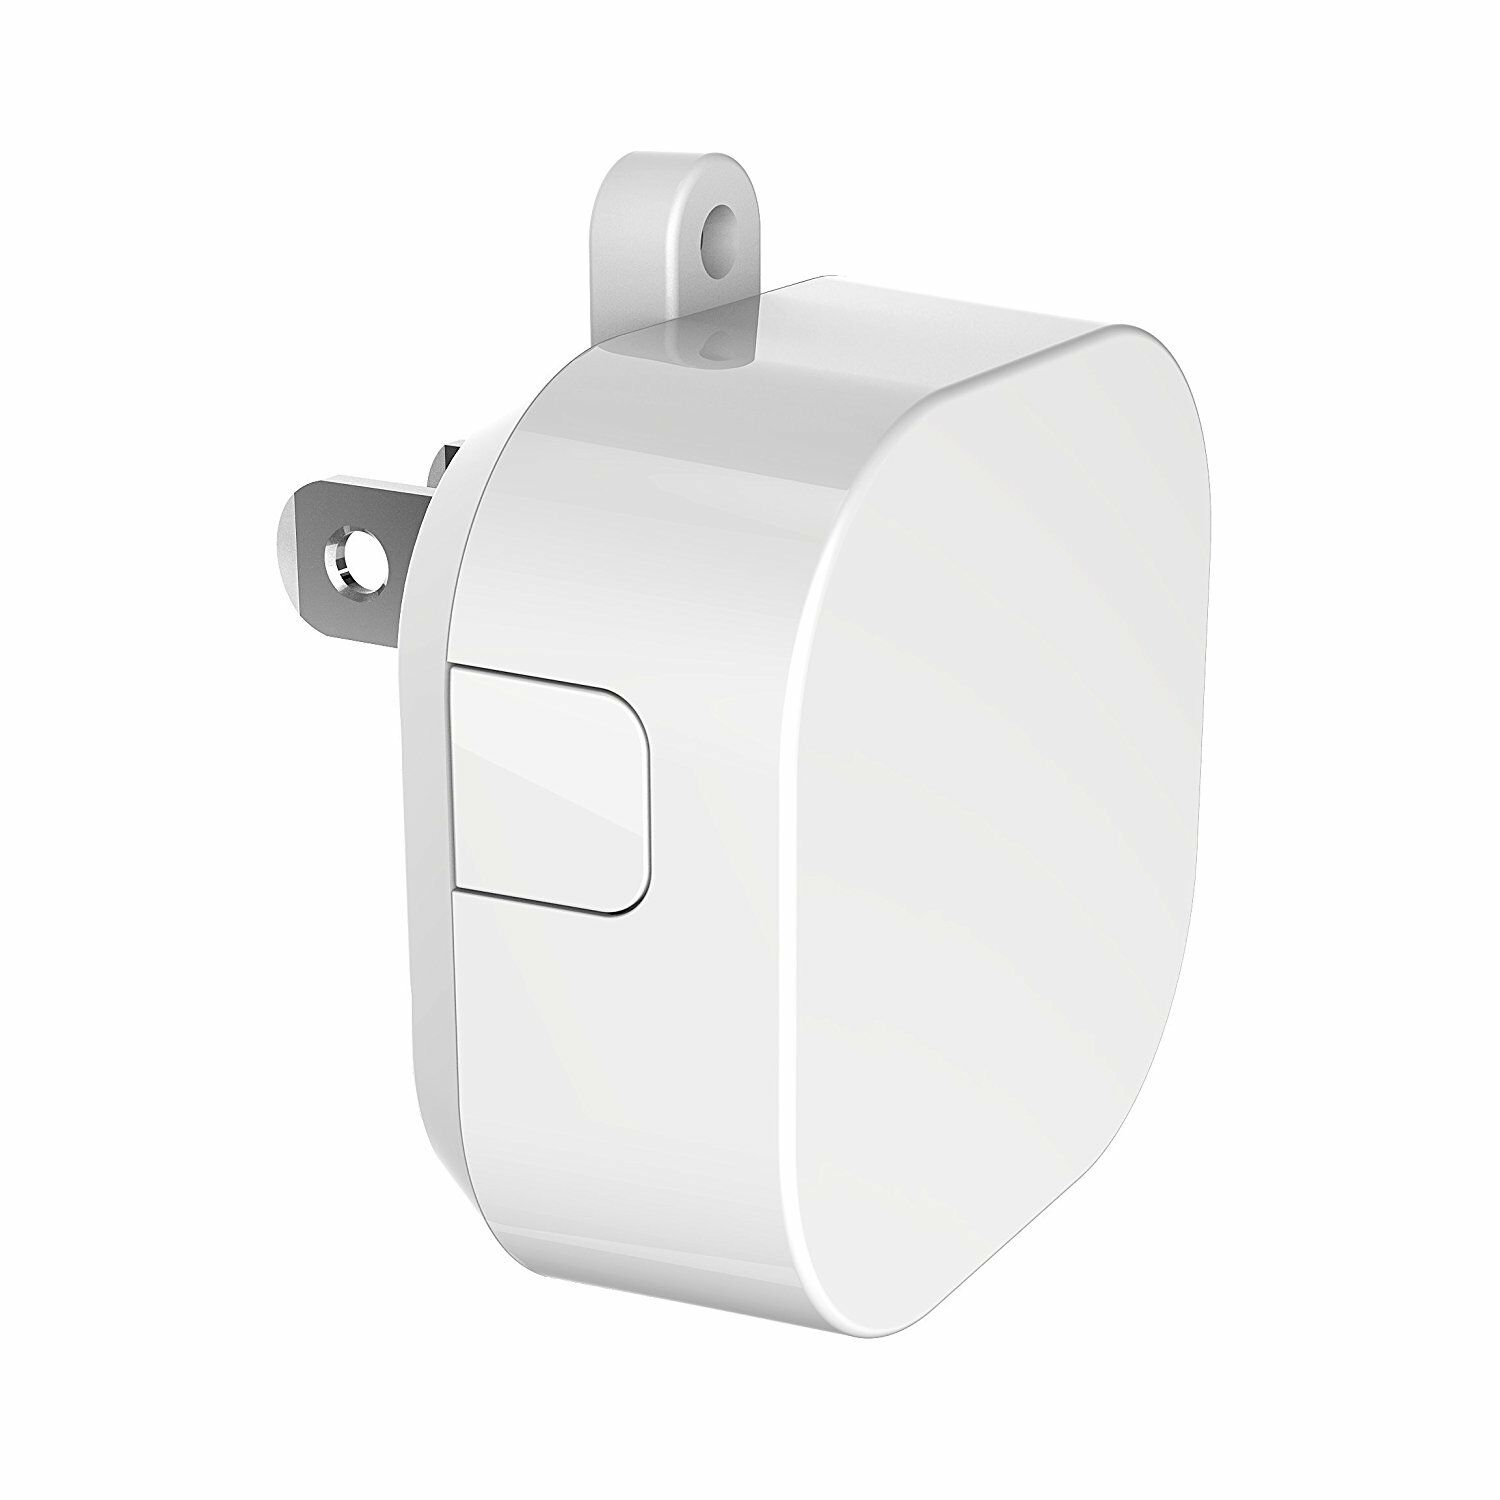 Aeotec by Aeon Labs Z-Wave Range Extender Repeater – Model DSD37-ZWUS